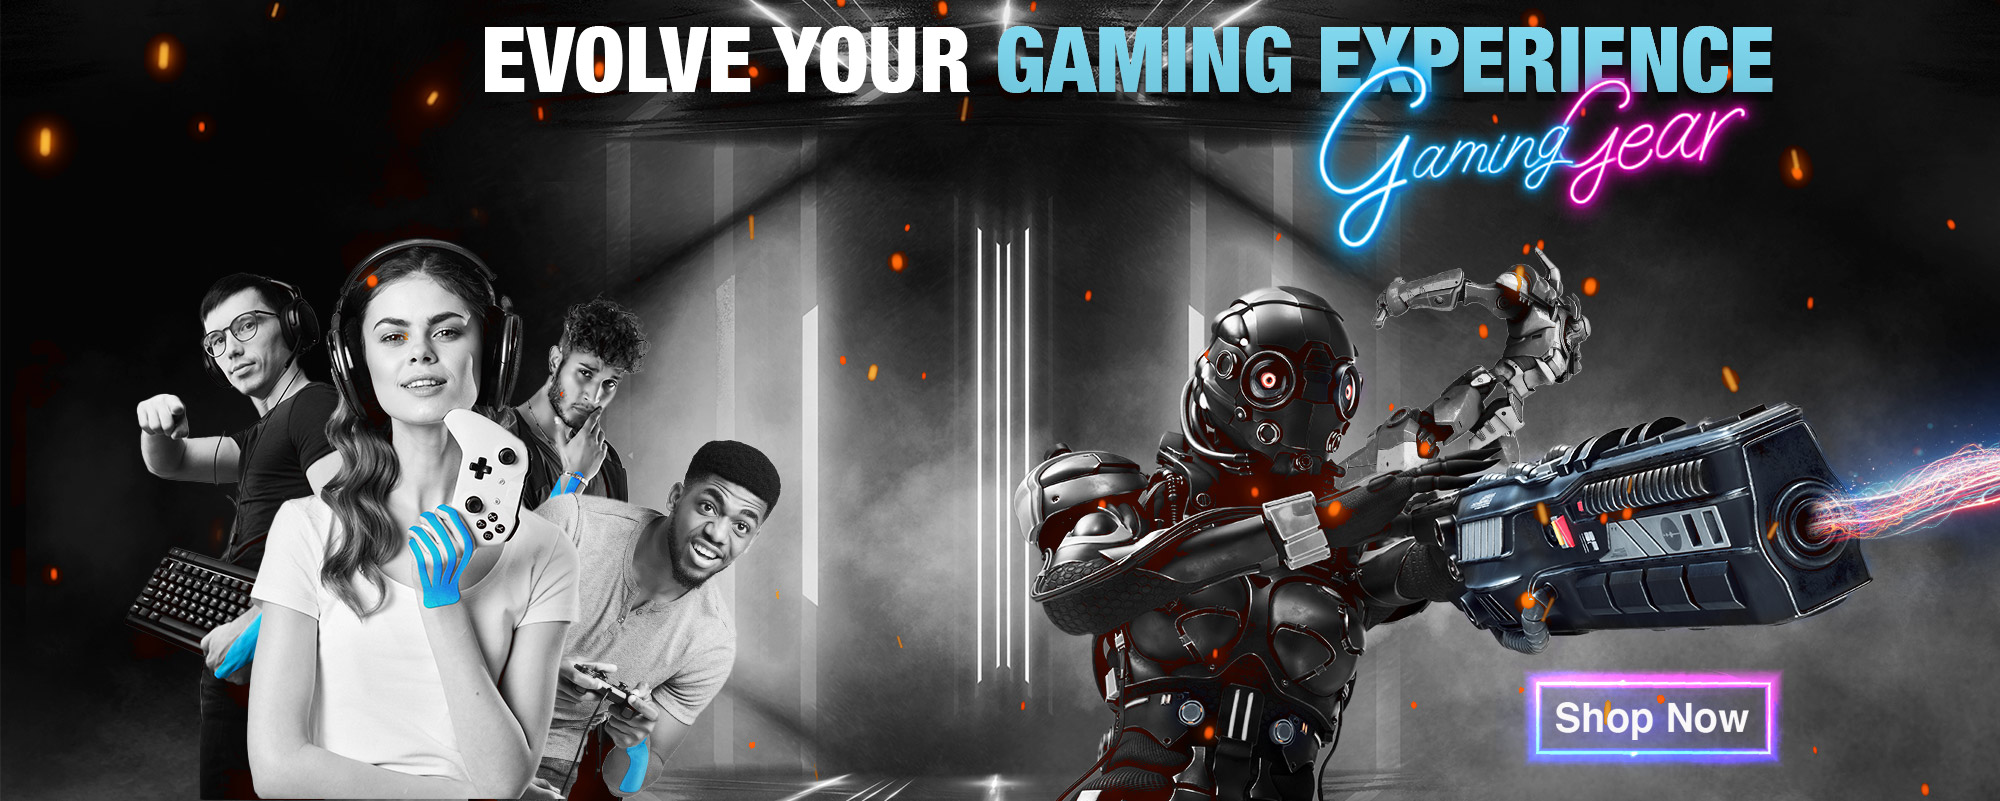 Gaming Gear, evolve your gaming experience. Shop Now.